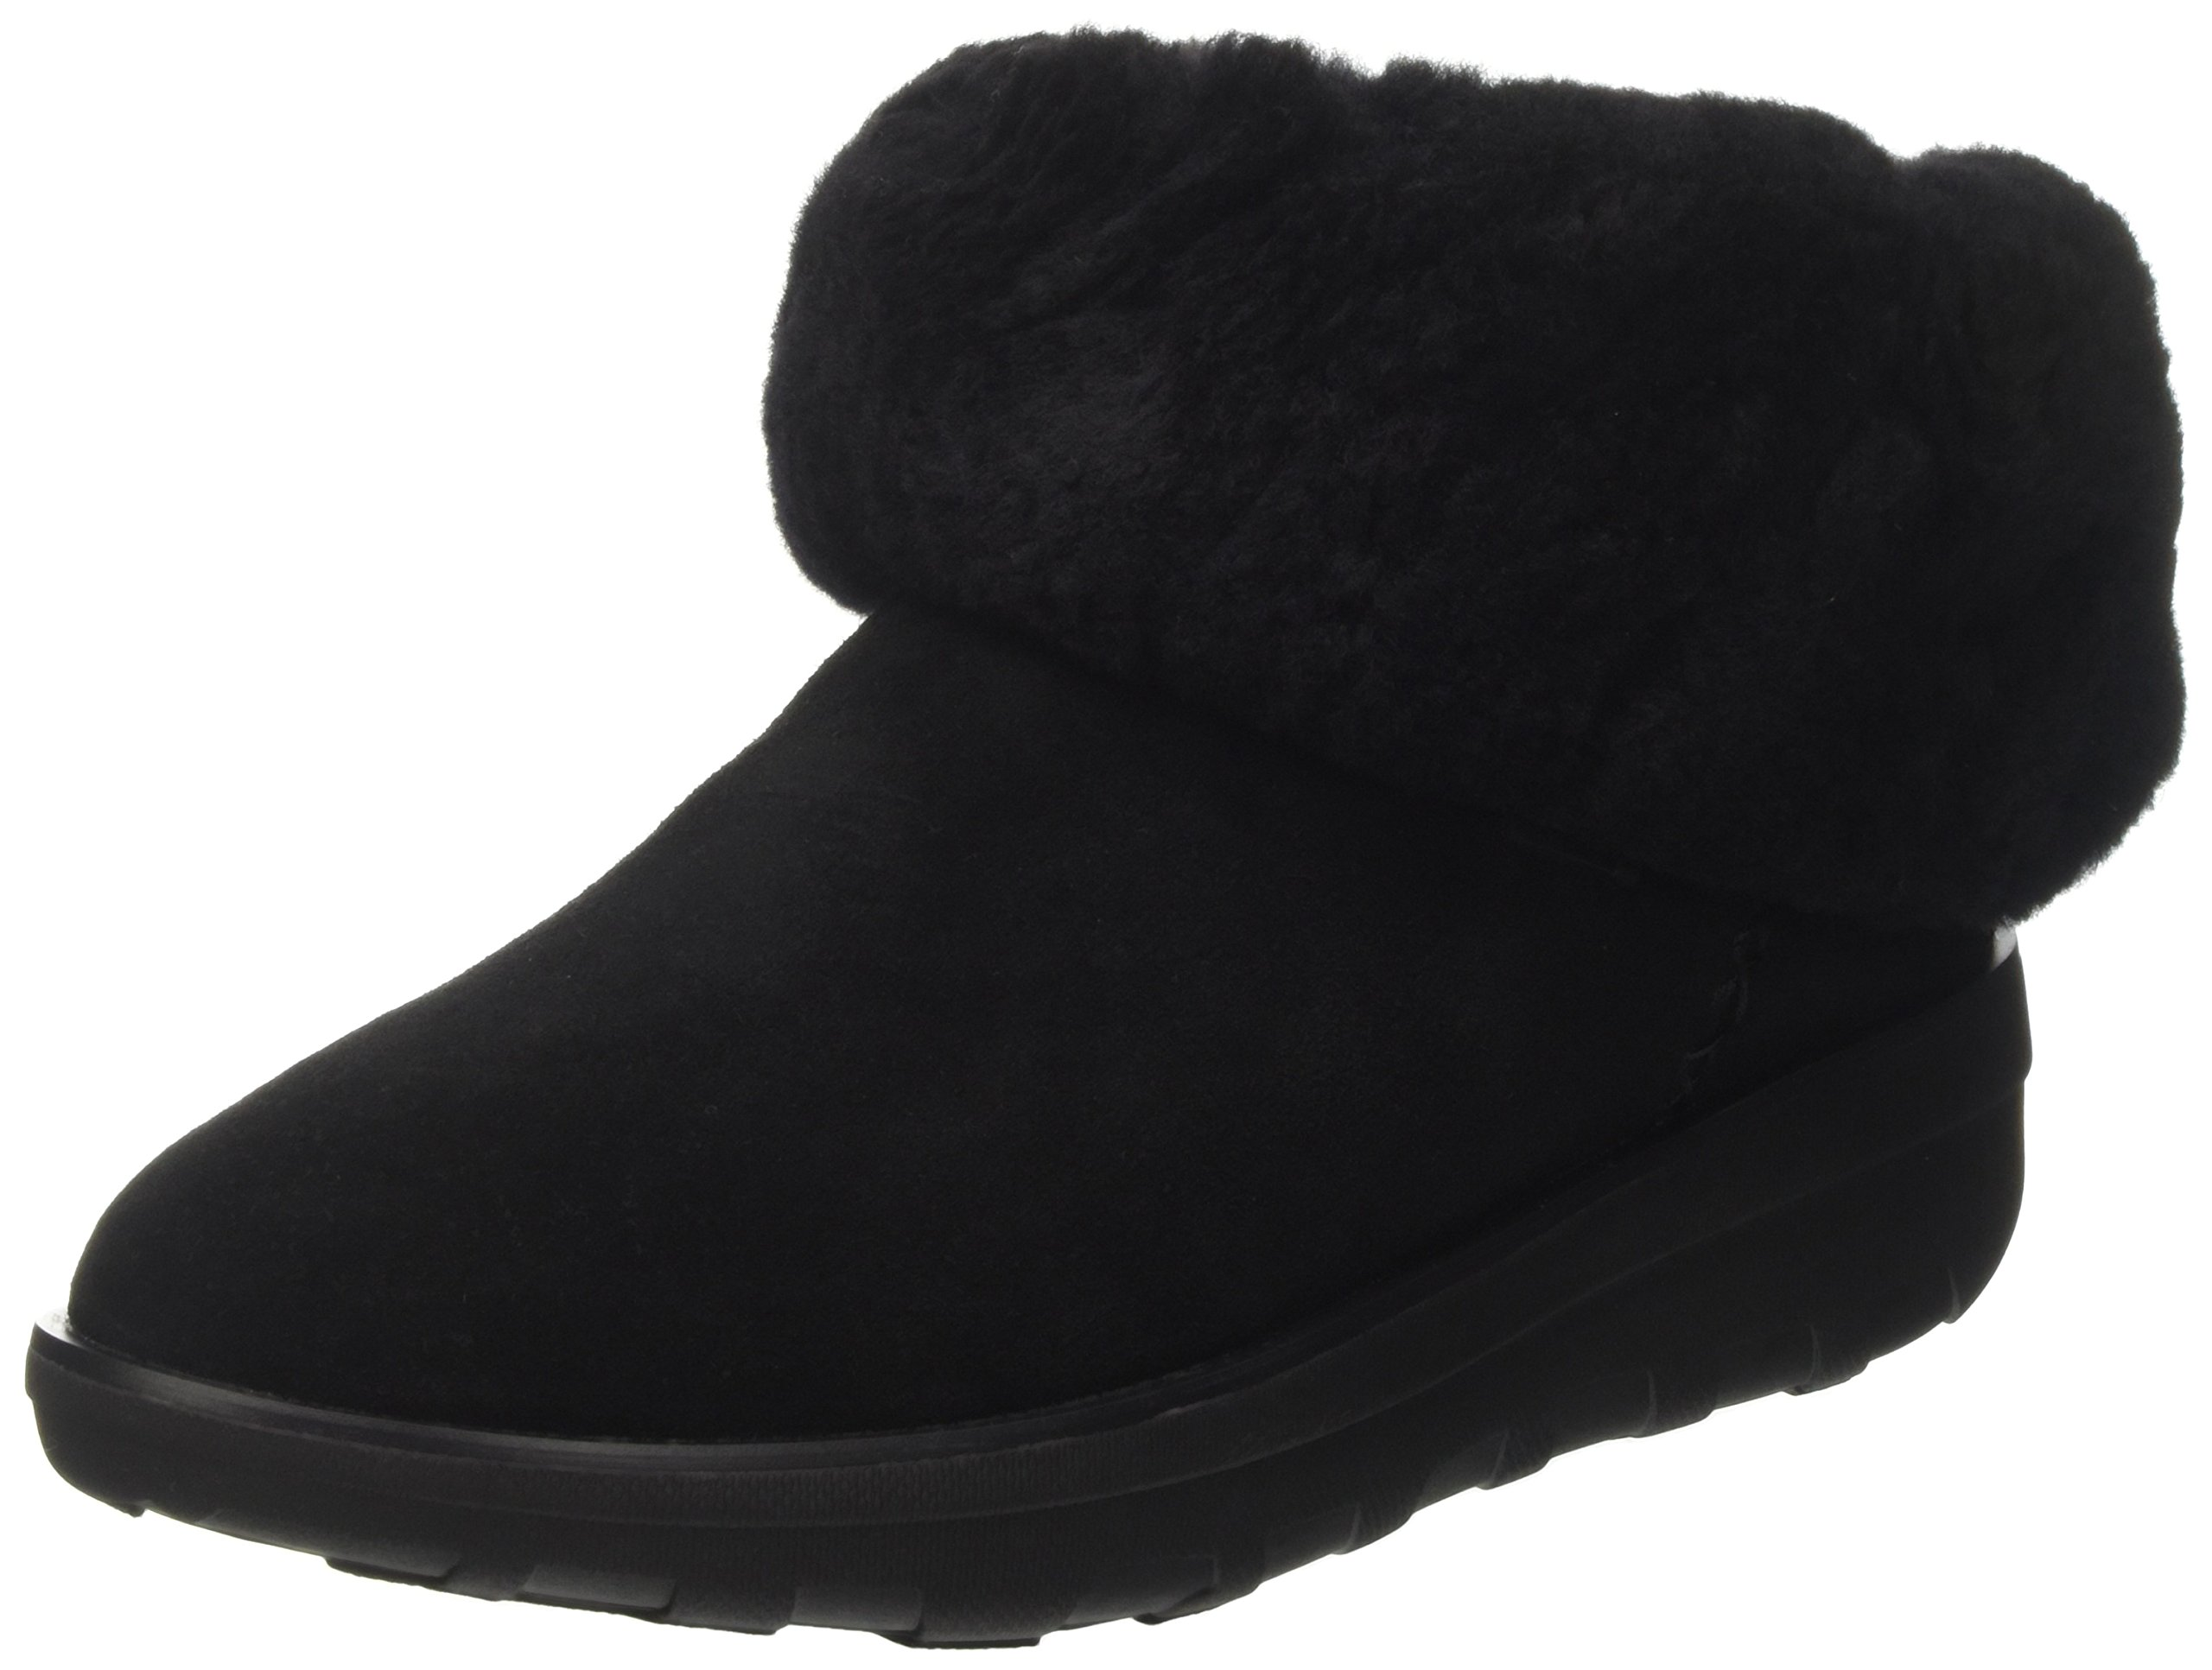 FitFlop Women's Mukluk Shorty 2 Boot All Black 6 M US